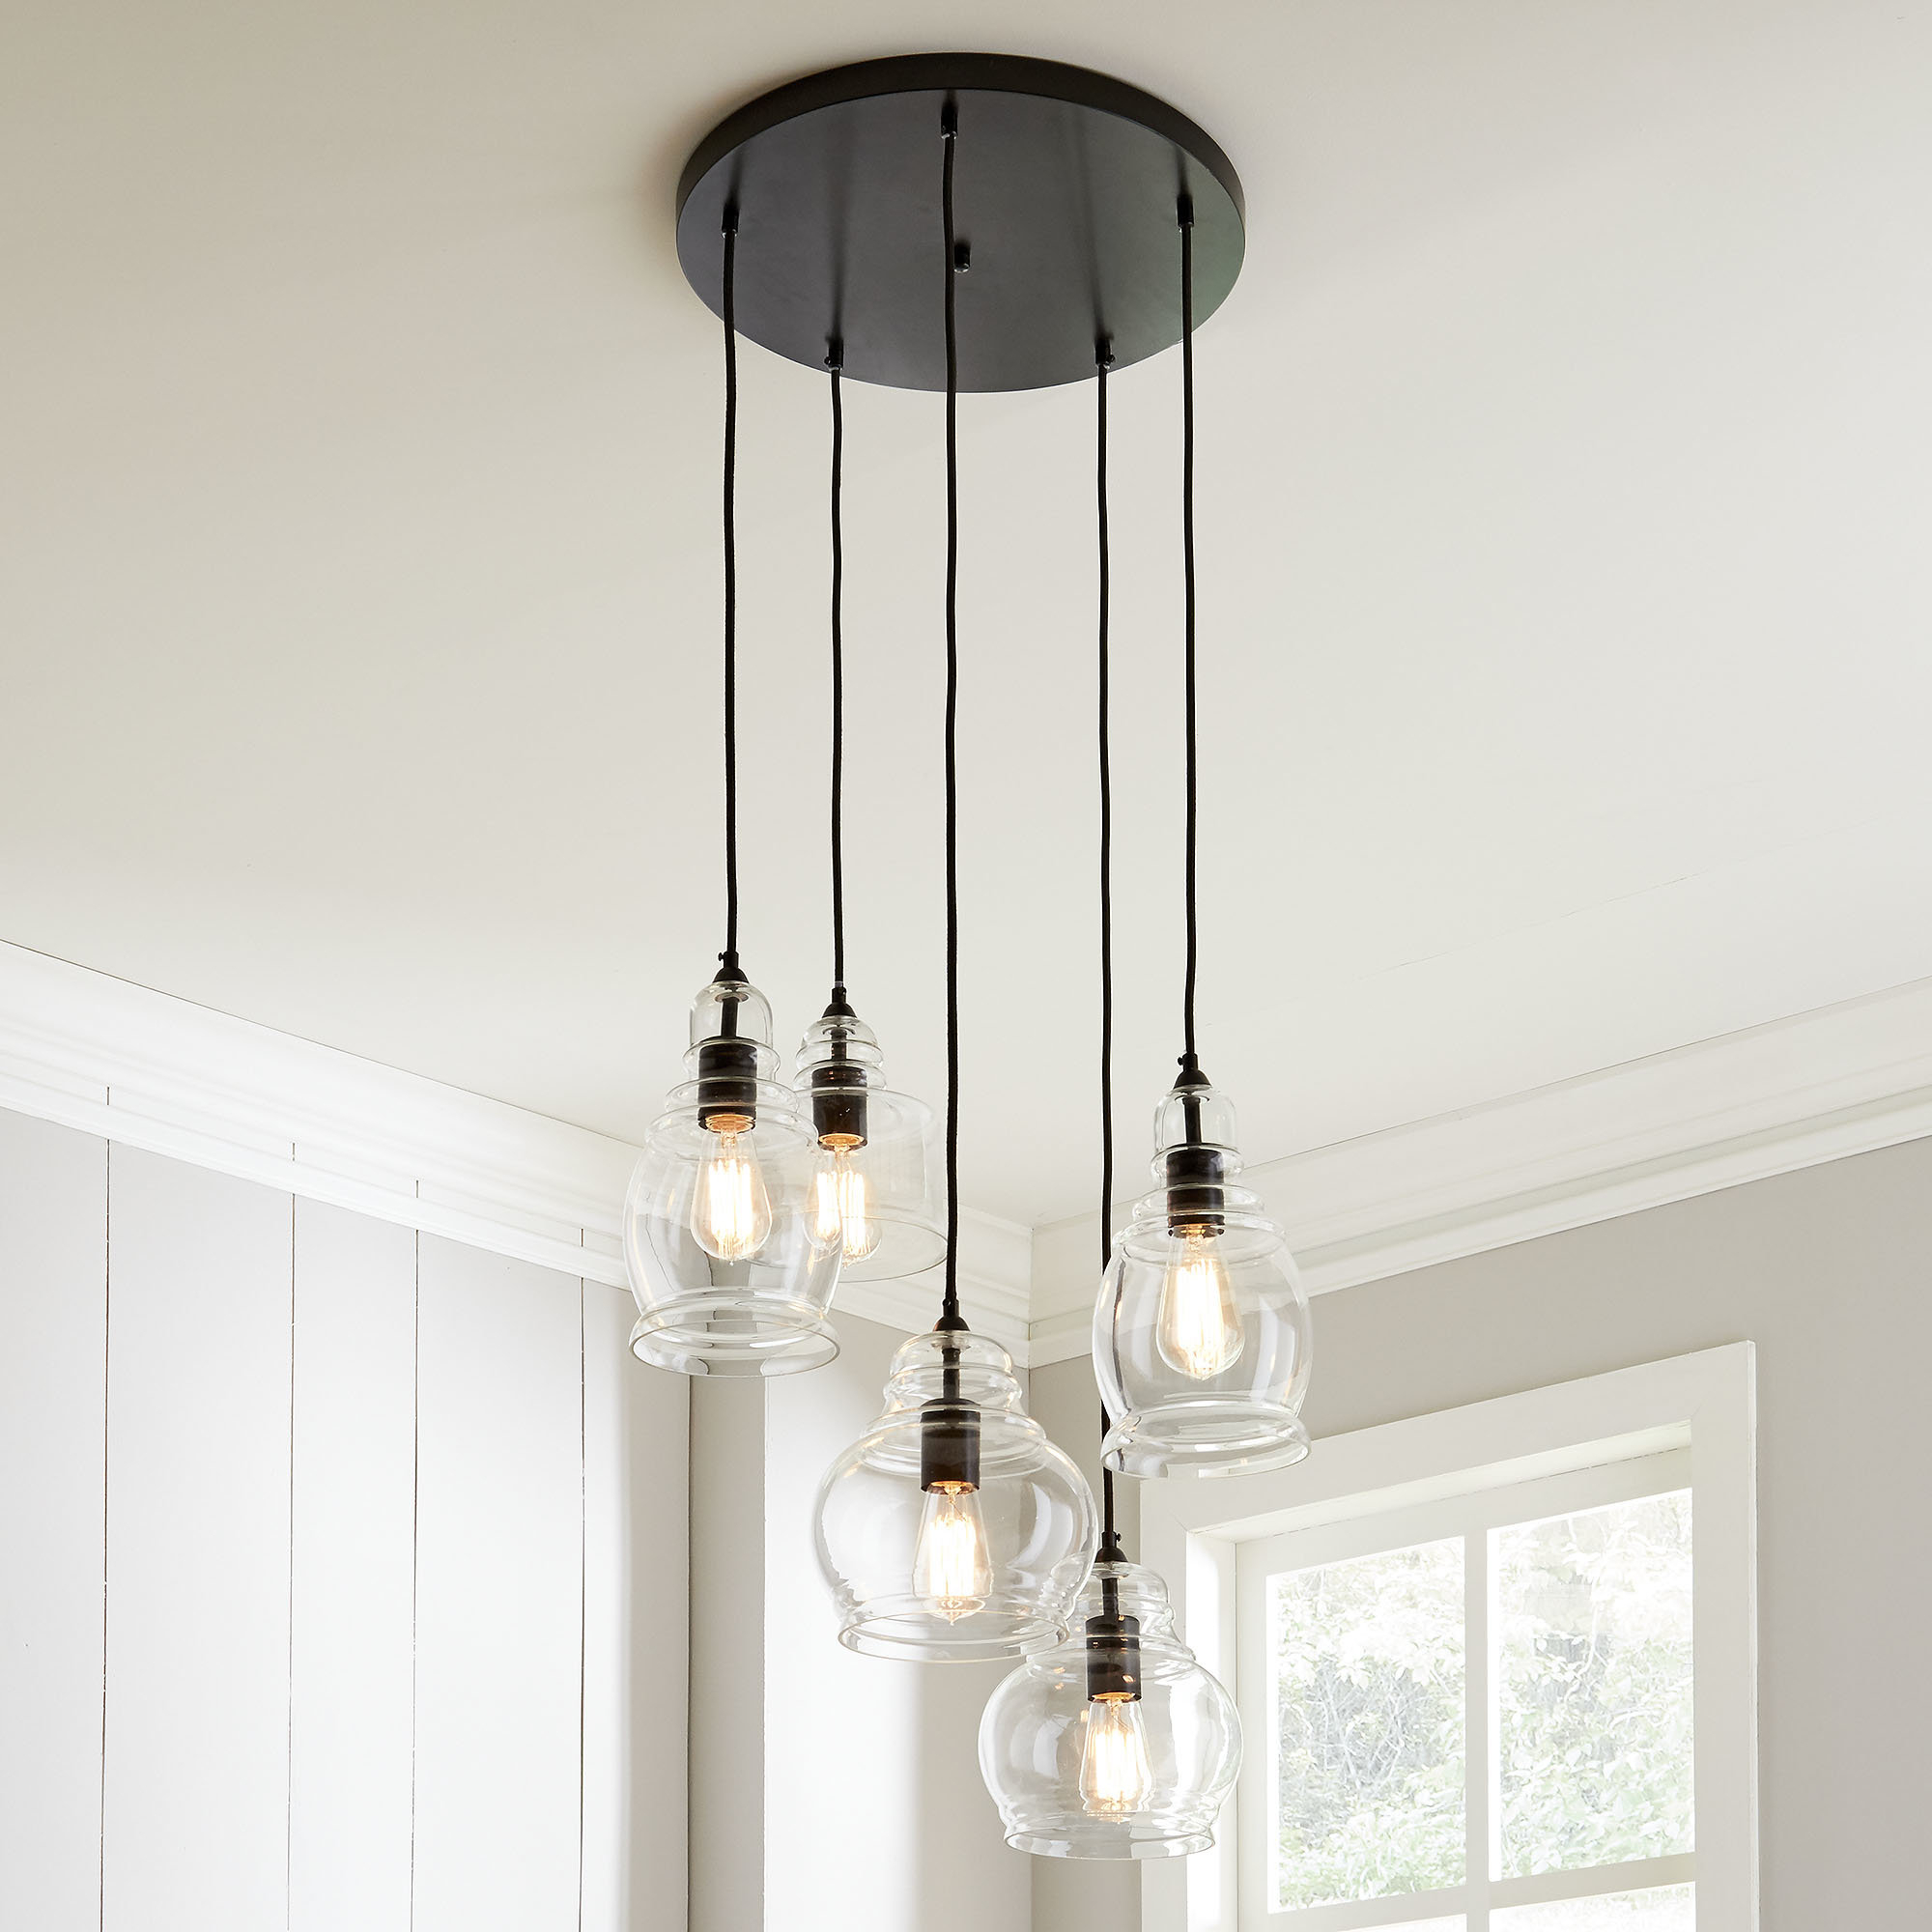 Wayfair Within Famous Berenice 3 Light Cluster Teardrop Pendants (View 10 of 25)